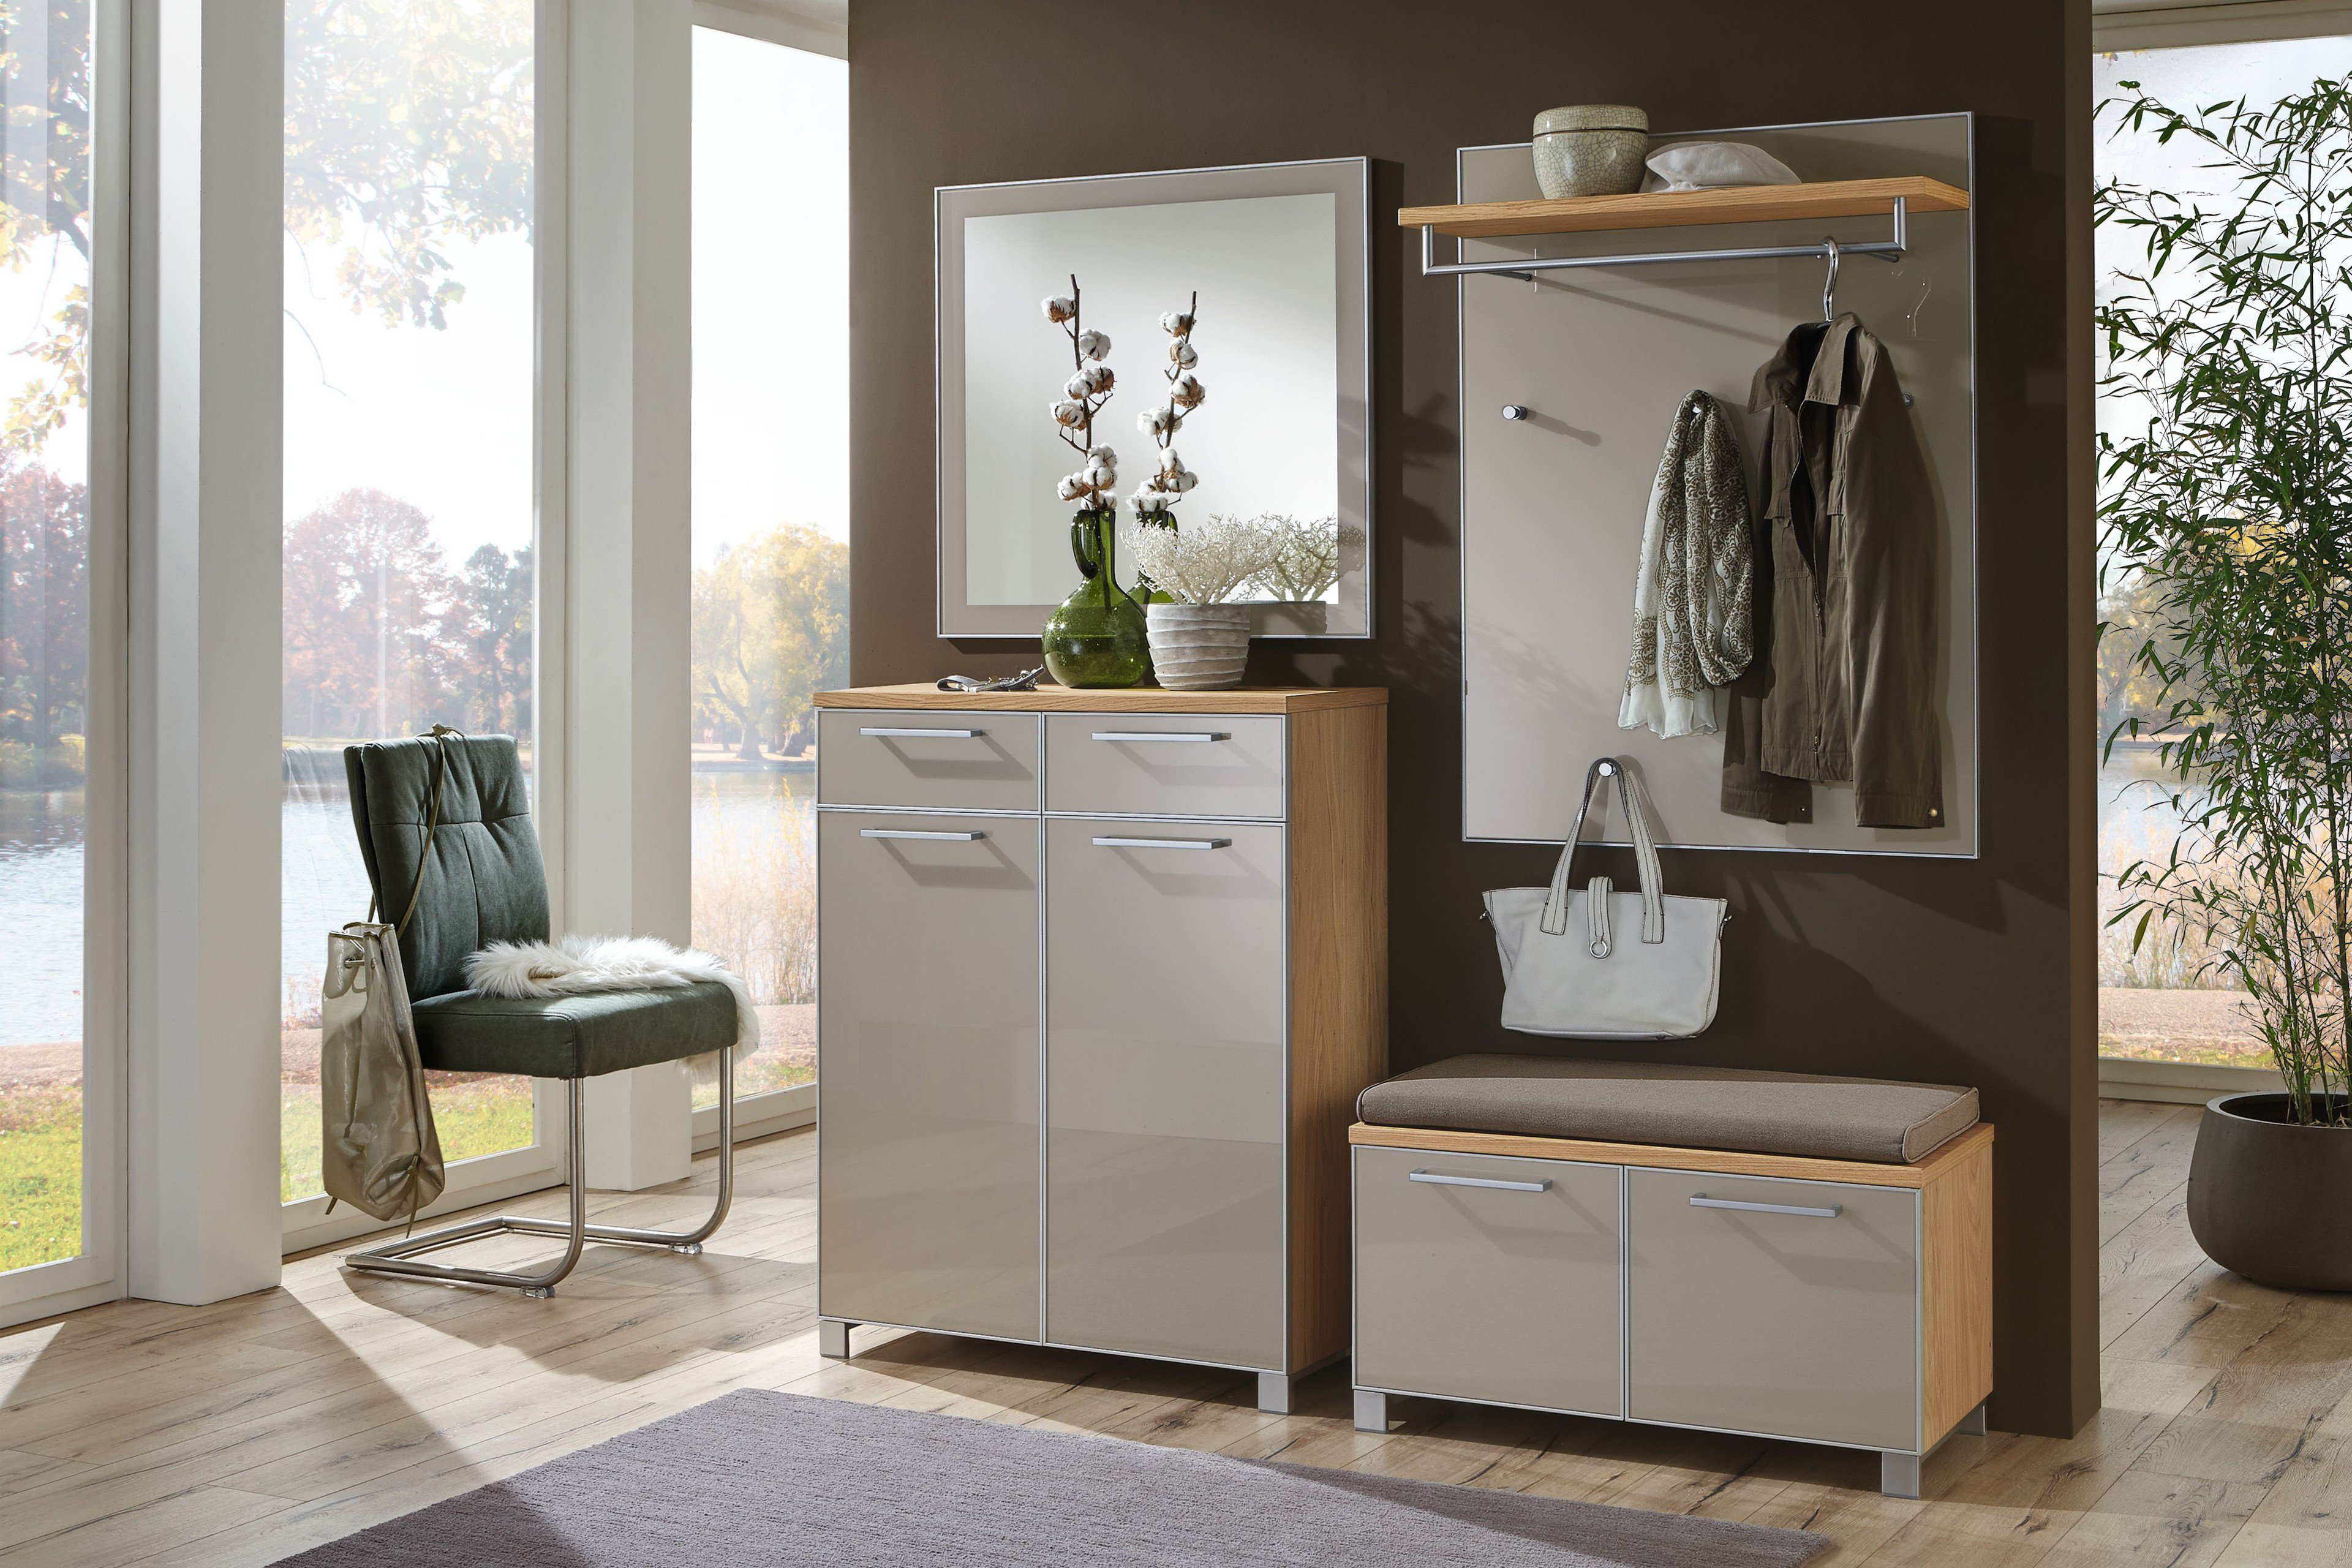 garderobe santina eiche bianco taupe voss m bel m bel letz ihr online shop. Black Bedroom Furniture Sets. Home Design Ideas